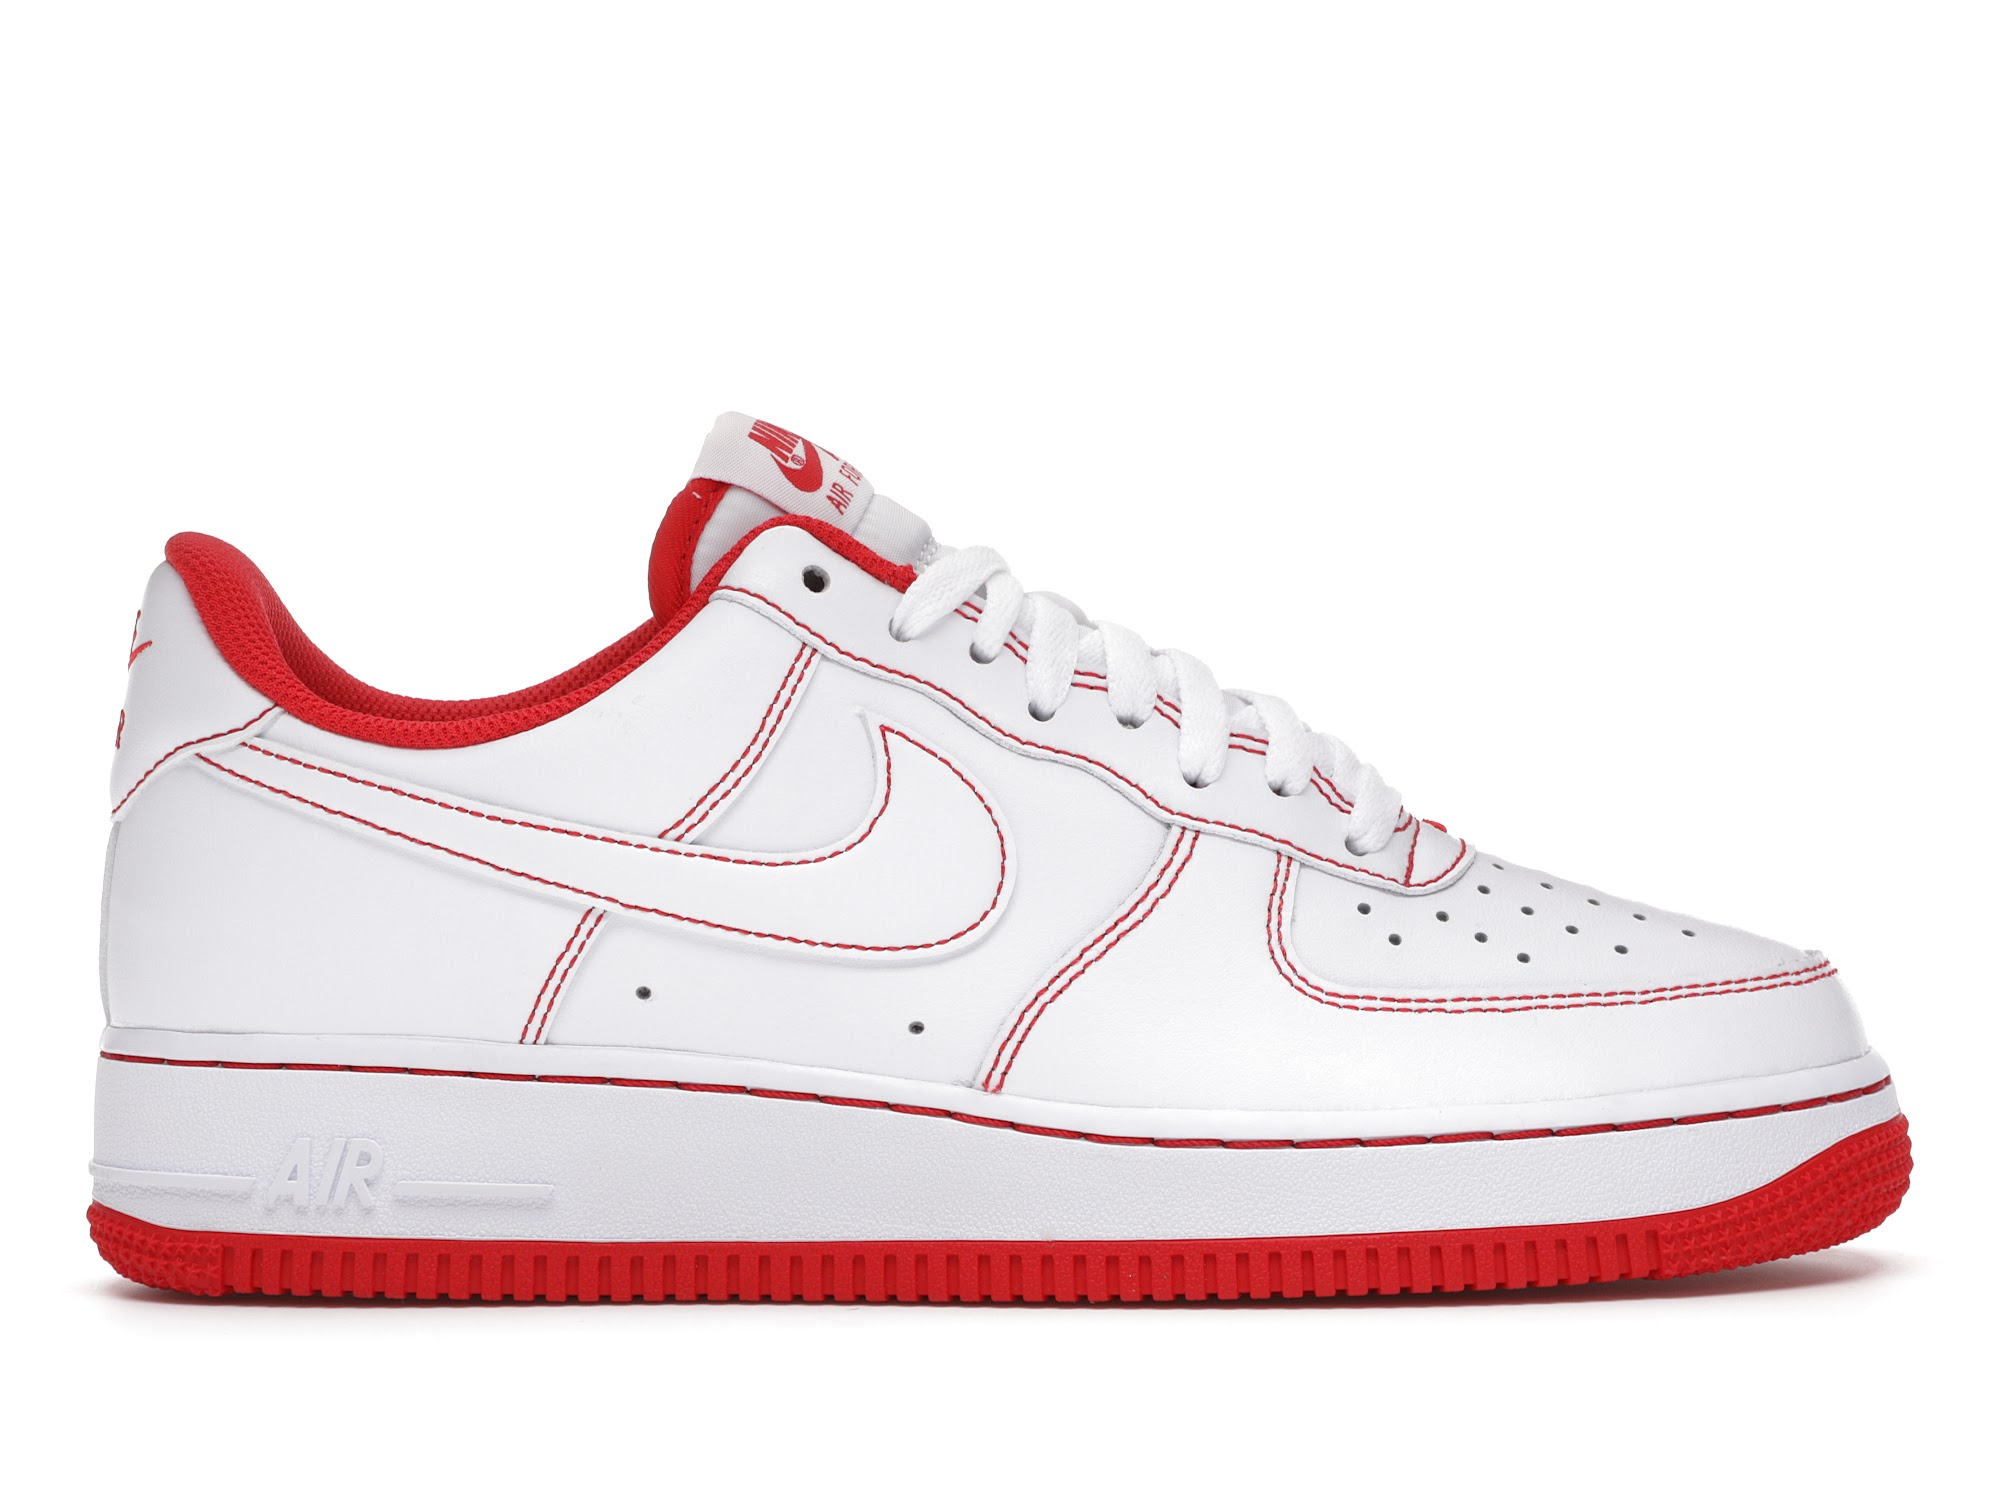 Nike Air Force 1 Low 07 White University Red